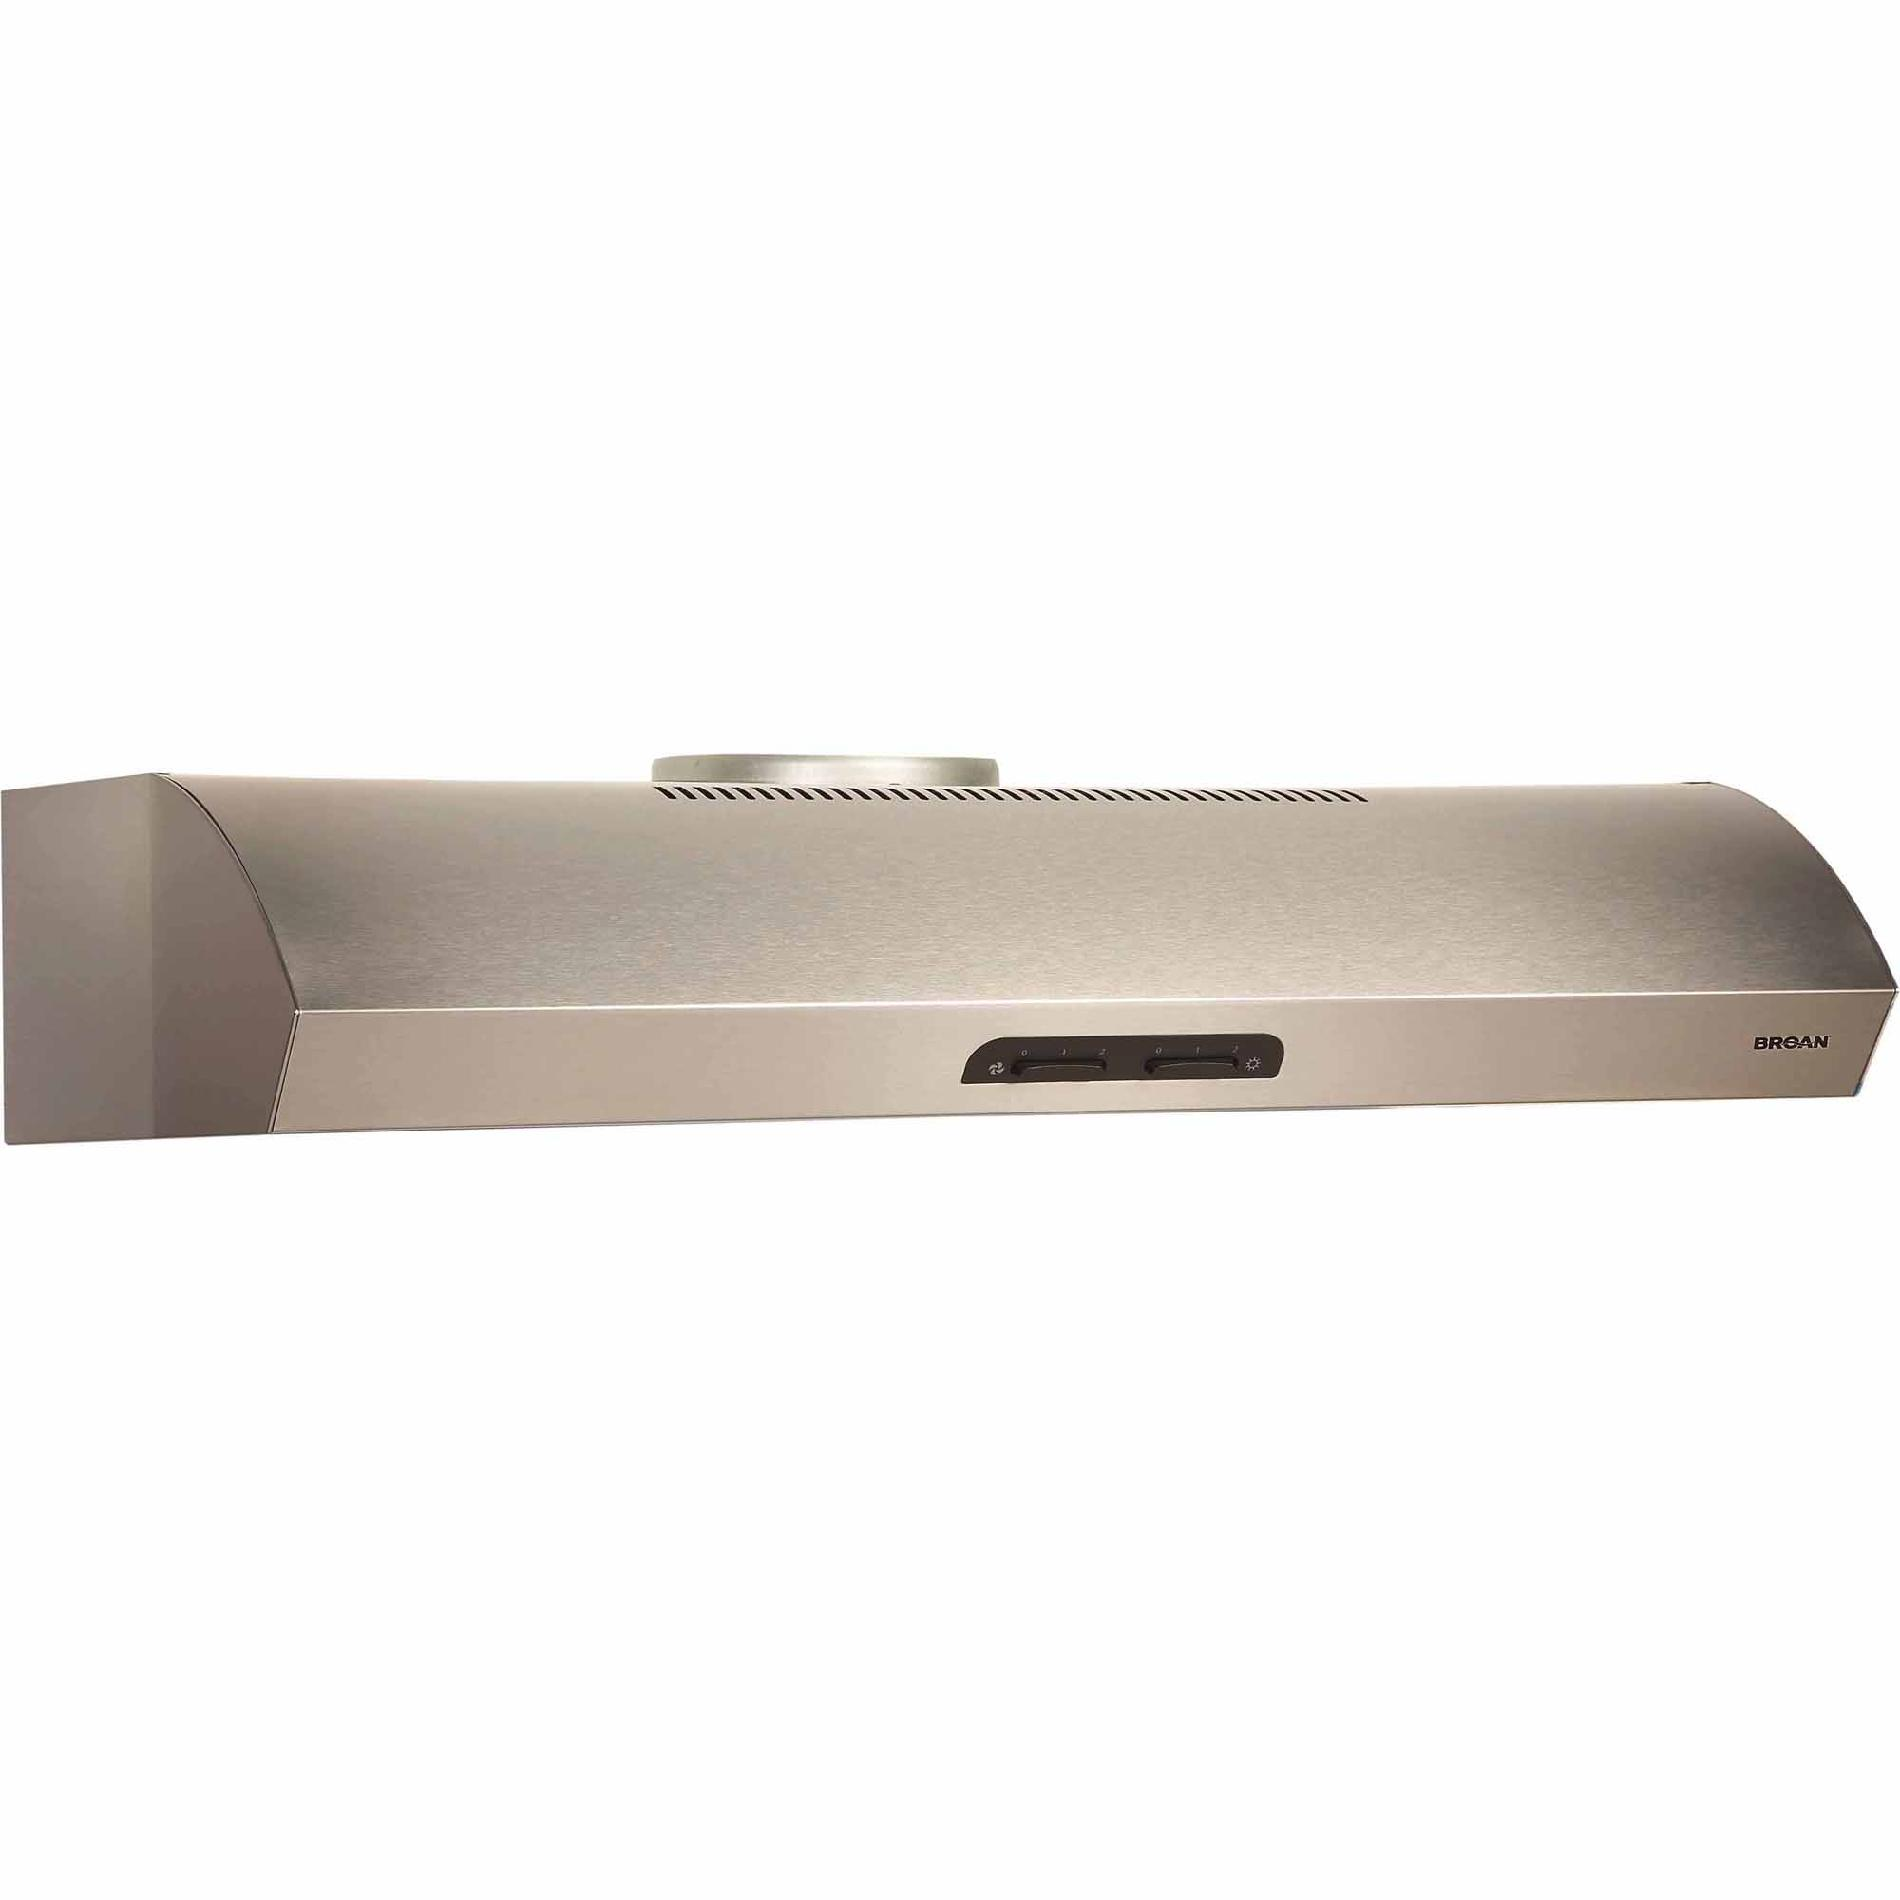 "Broan QP142SS 42"" 300 CFM Under Cabinet Range Hood - Stainless Steel"